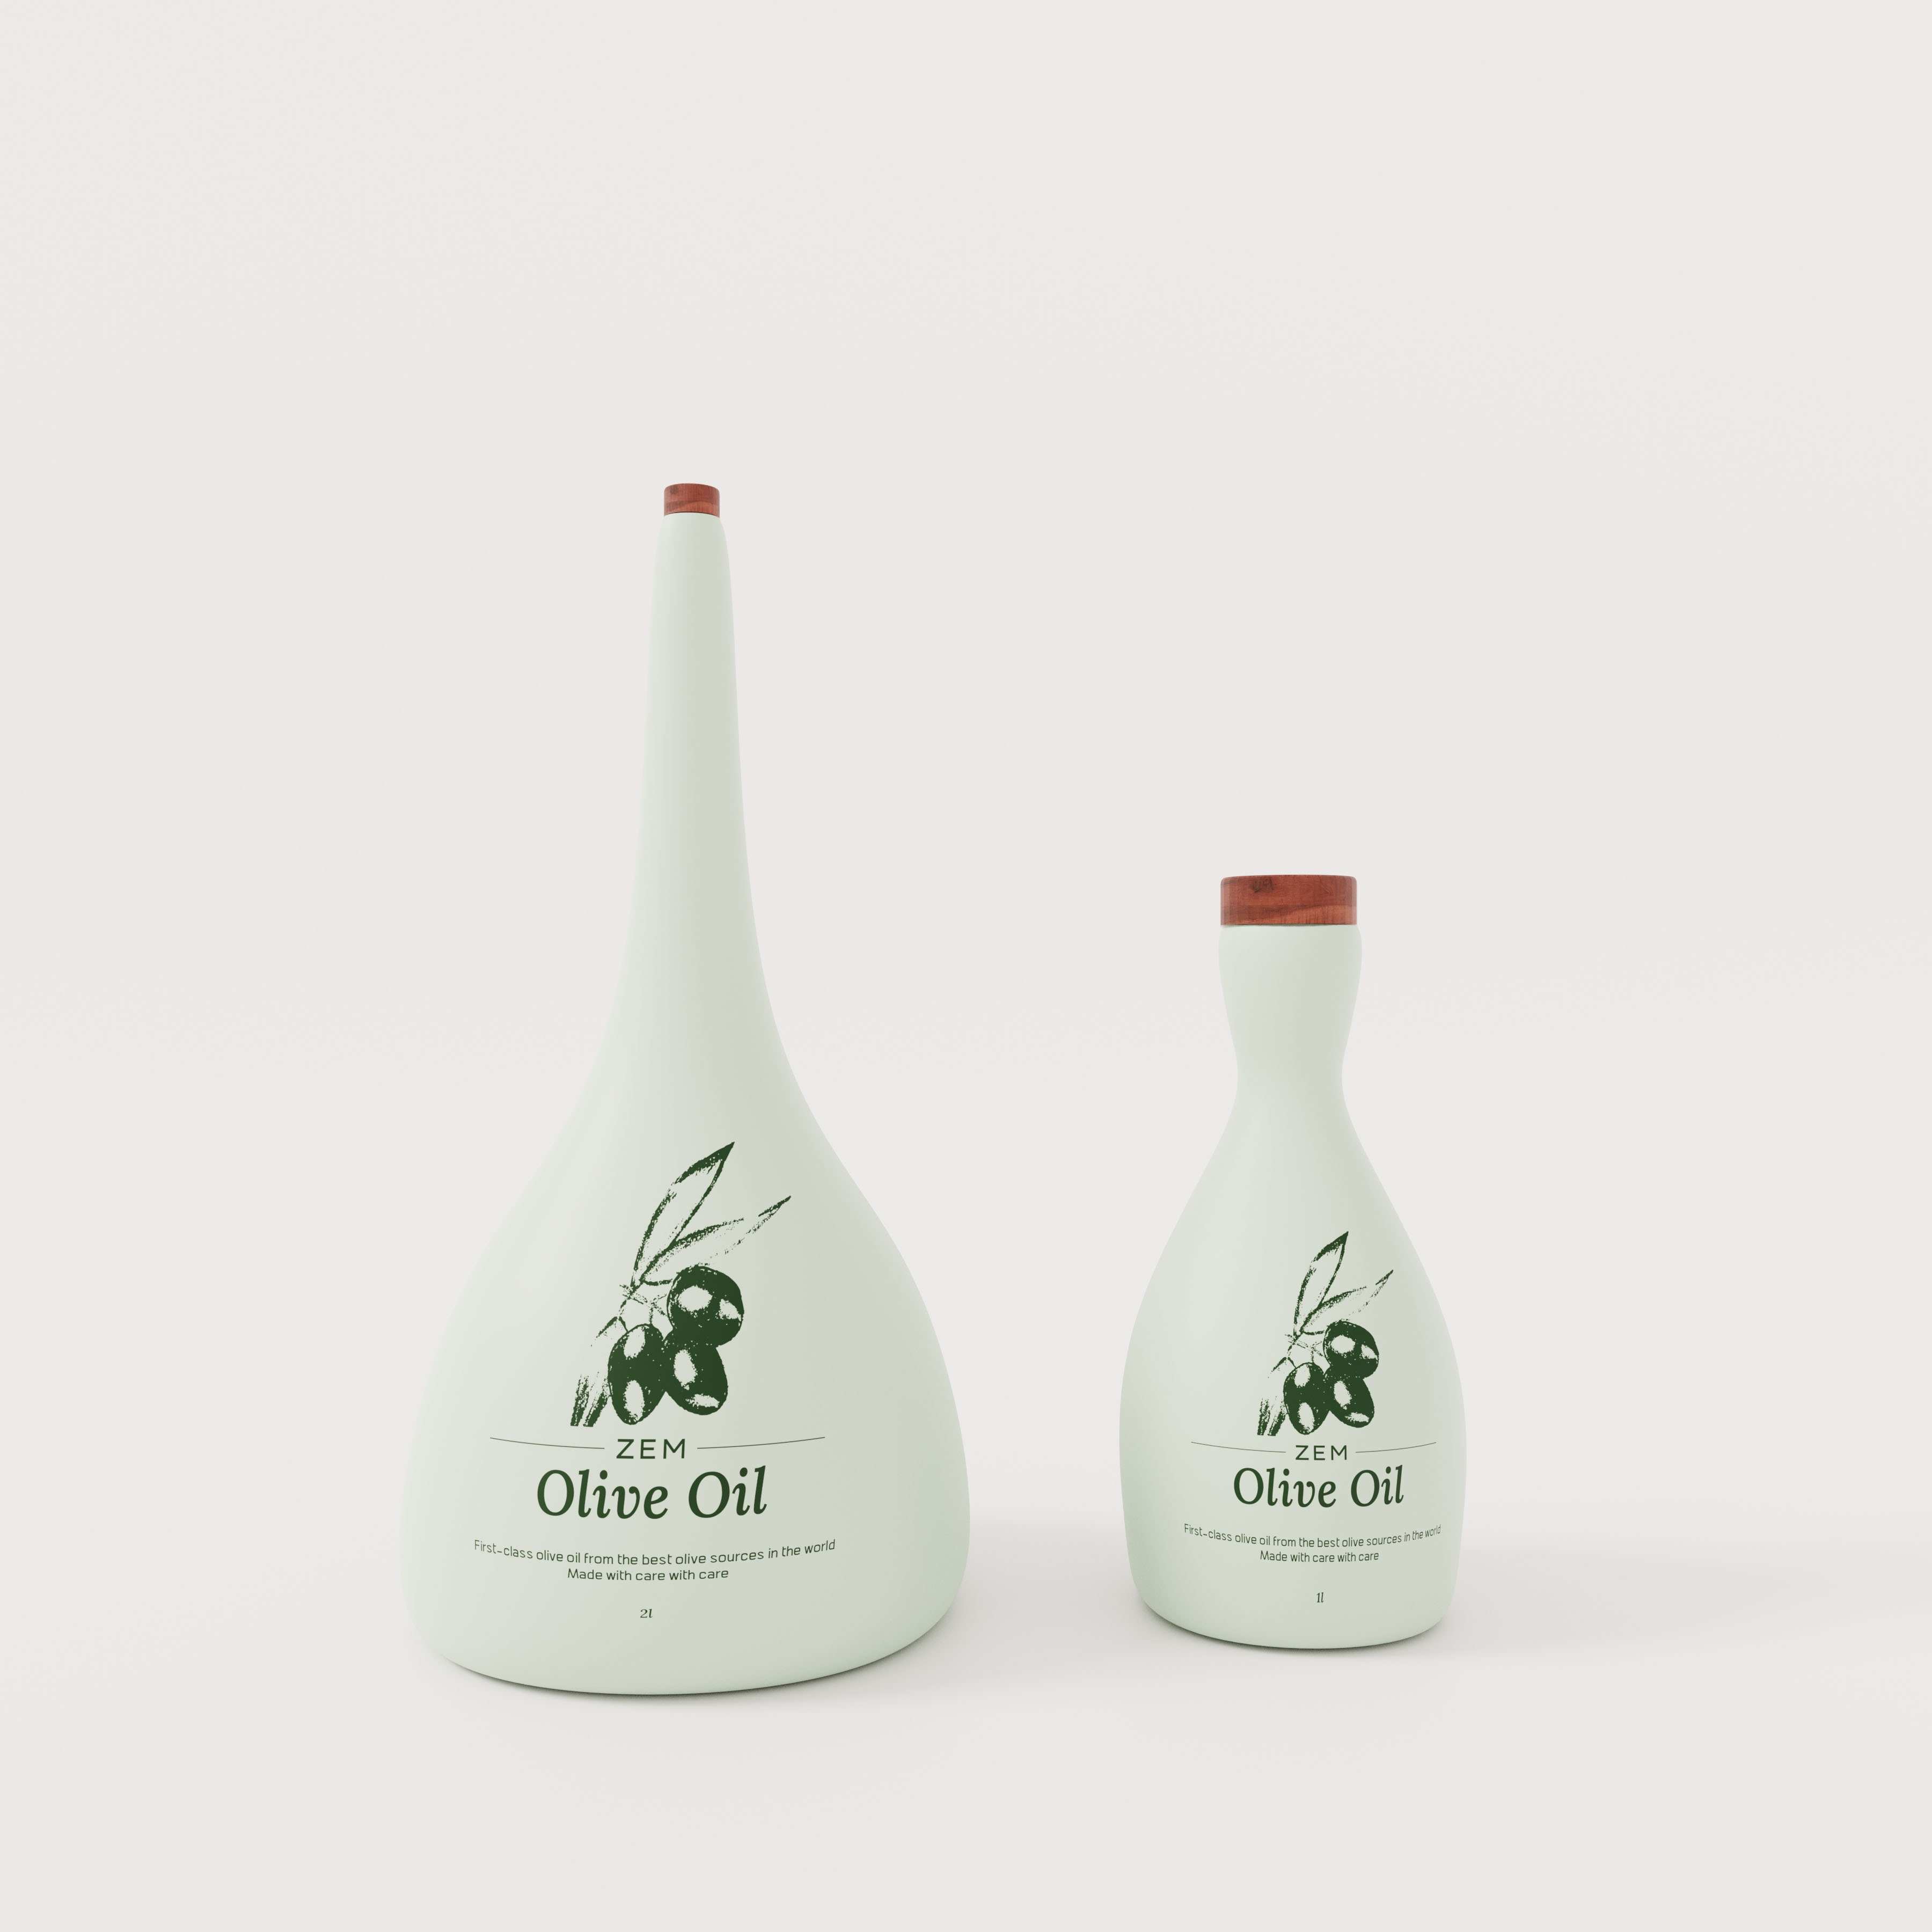 Zem Olive Oil Packaging Design by ORPETRON